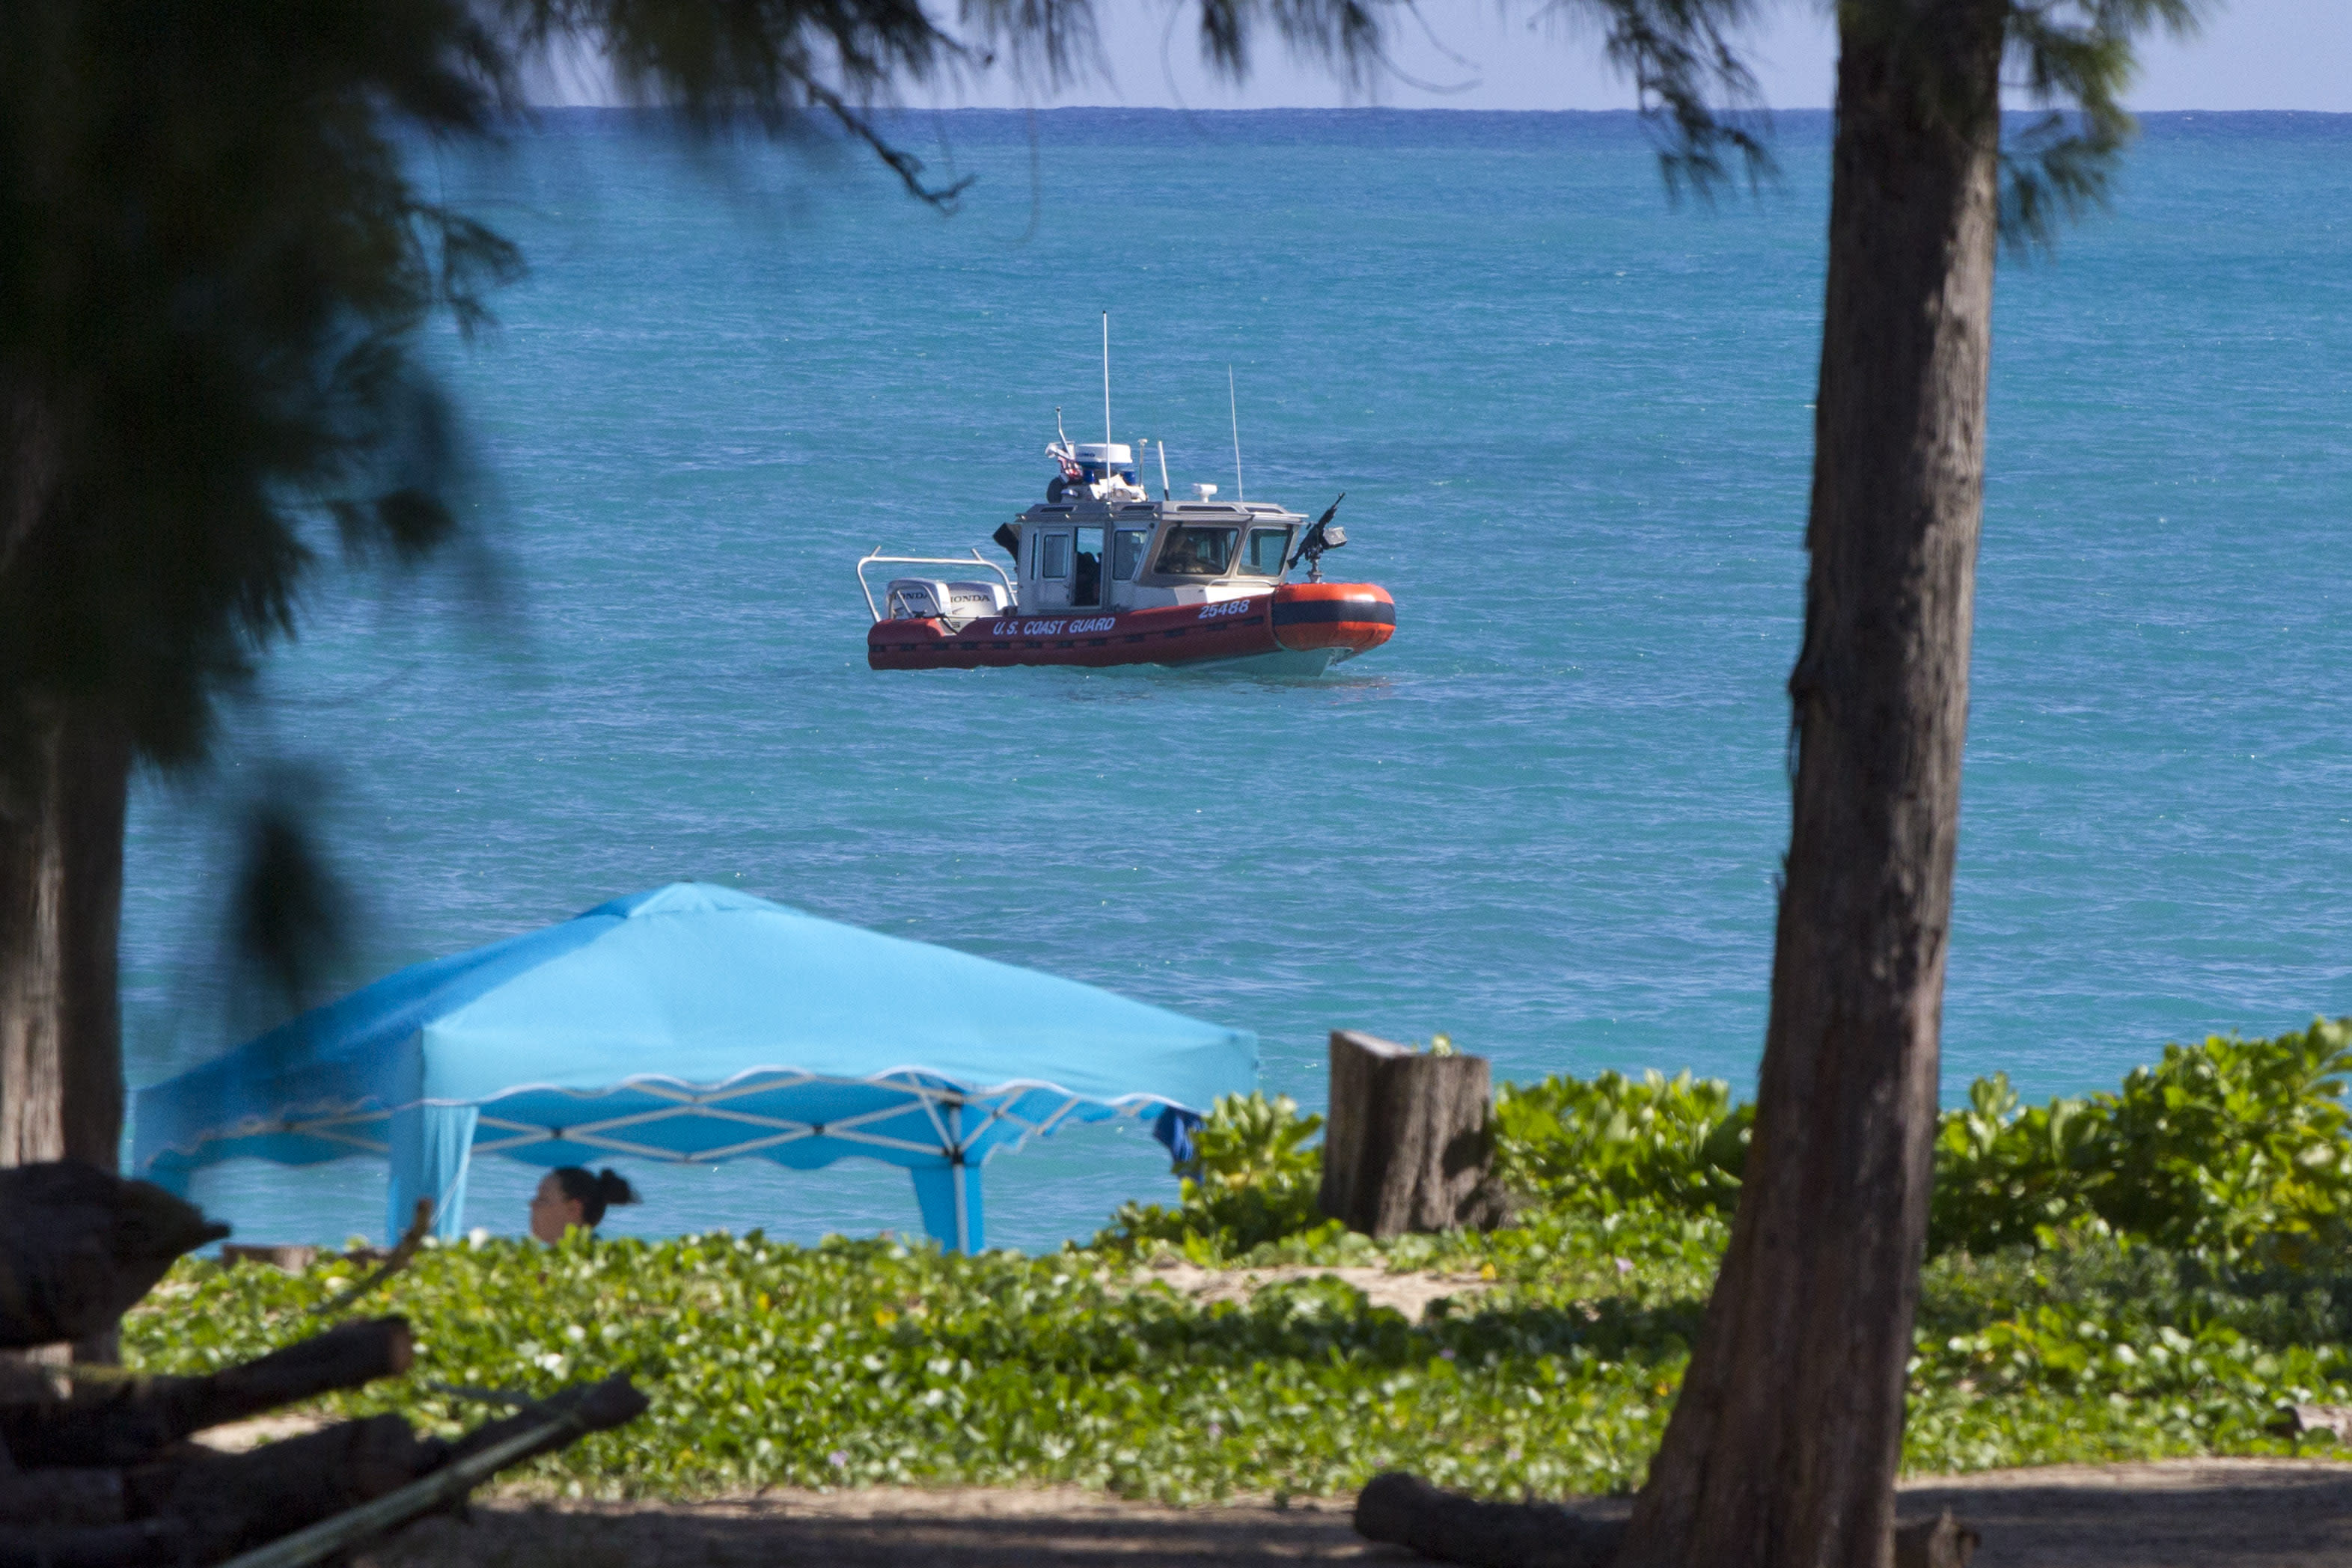 President Obama's Hawaii vacation: Day 2